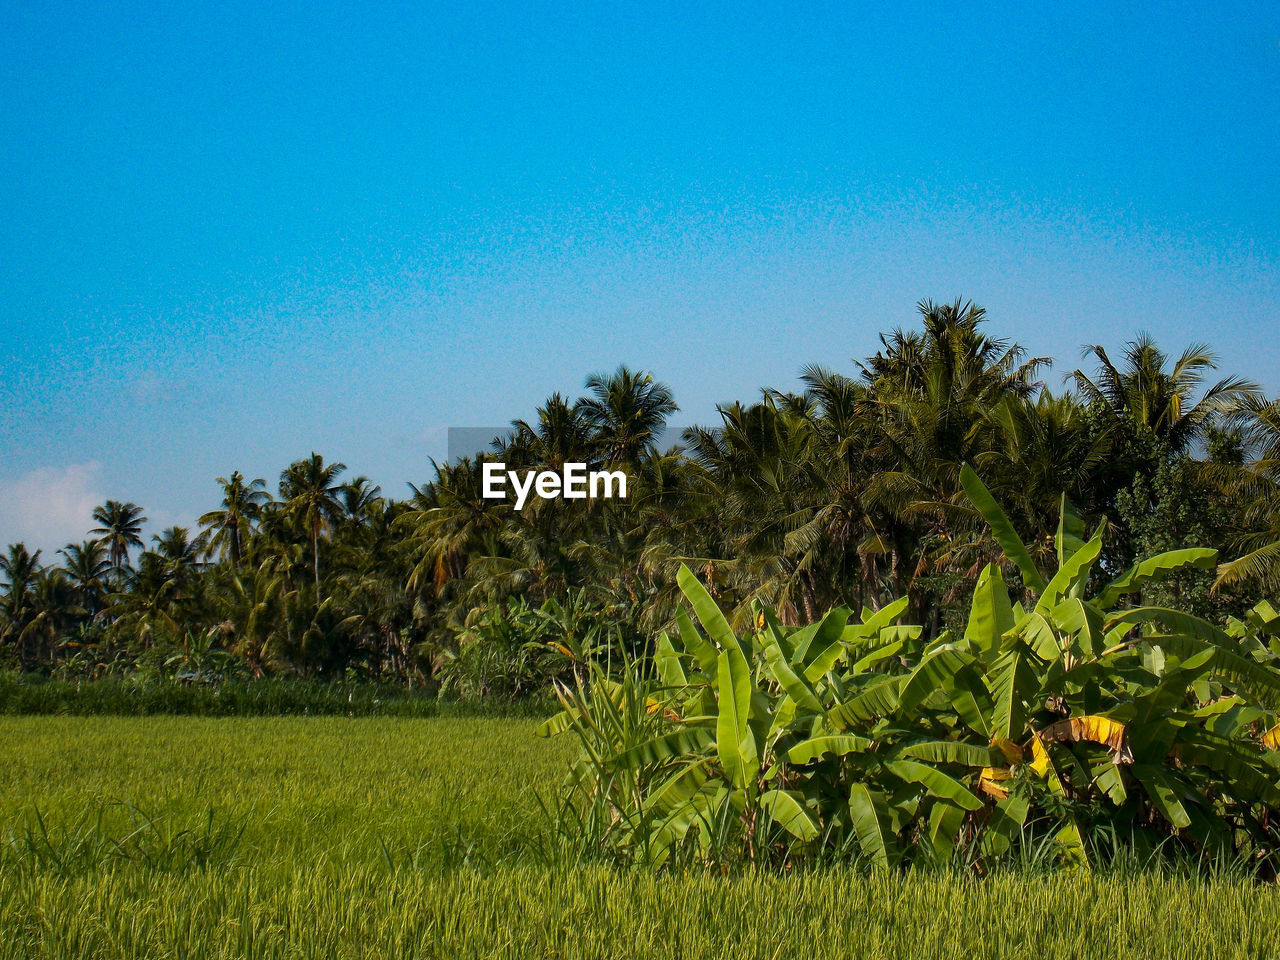 plant, growth, tree, sky, green color, beauty in nature, scenics - nature, palm tree, tranquility, landscape, land, nature, tranquil scene, tropical climate, environment, clear sky, field, grass, blue, day, no people, outdoors, coconut palm tree, plantation